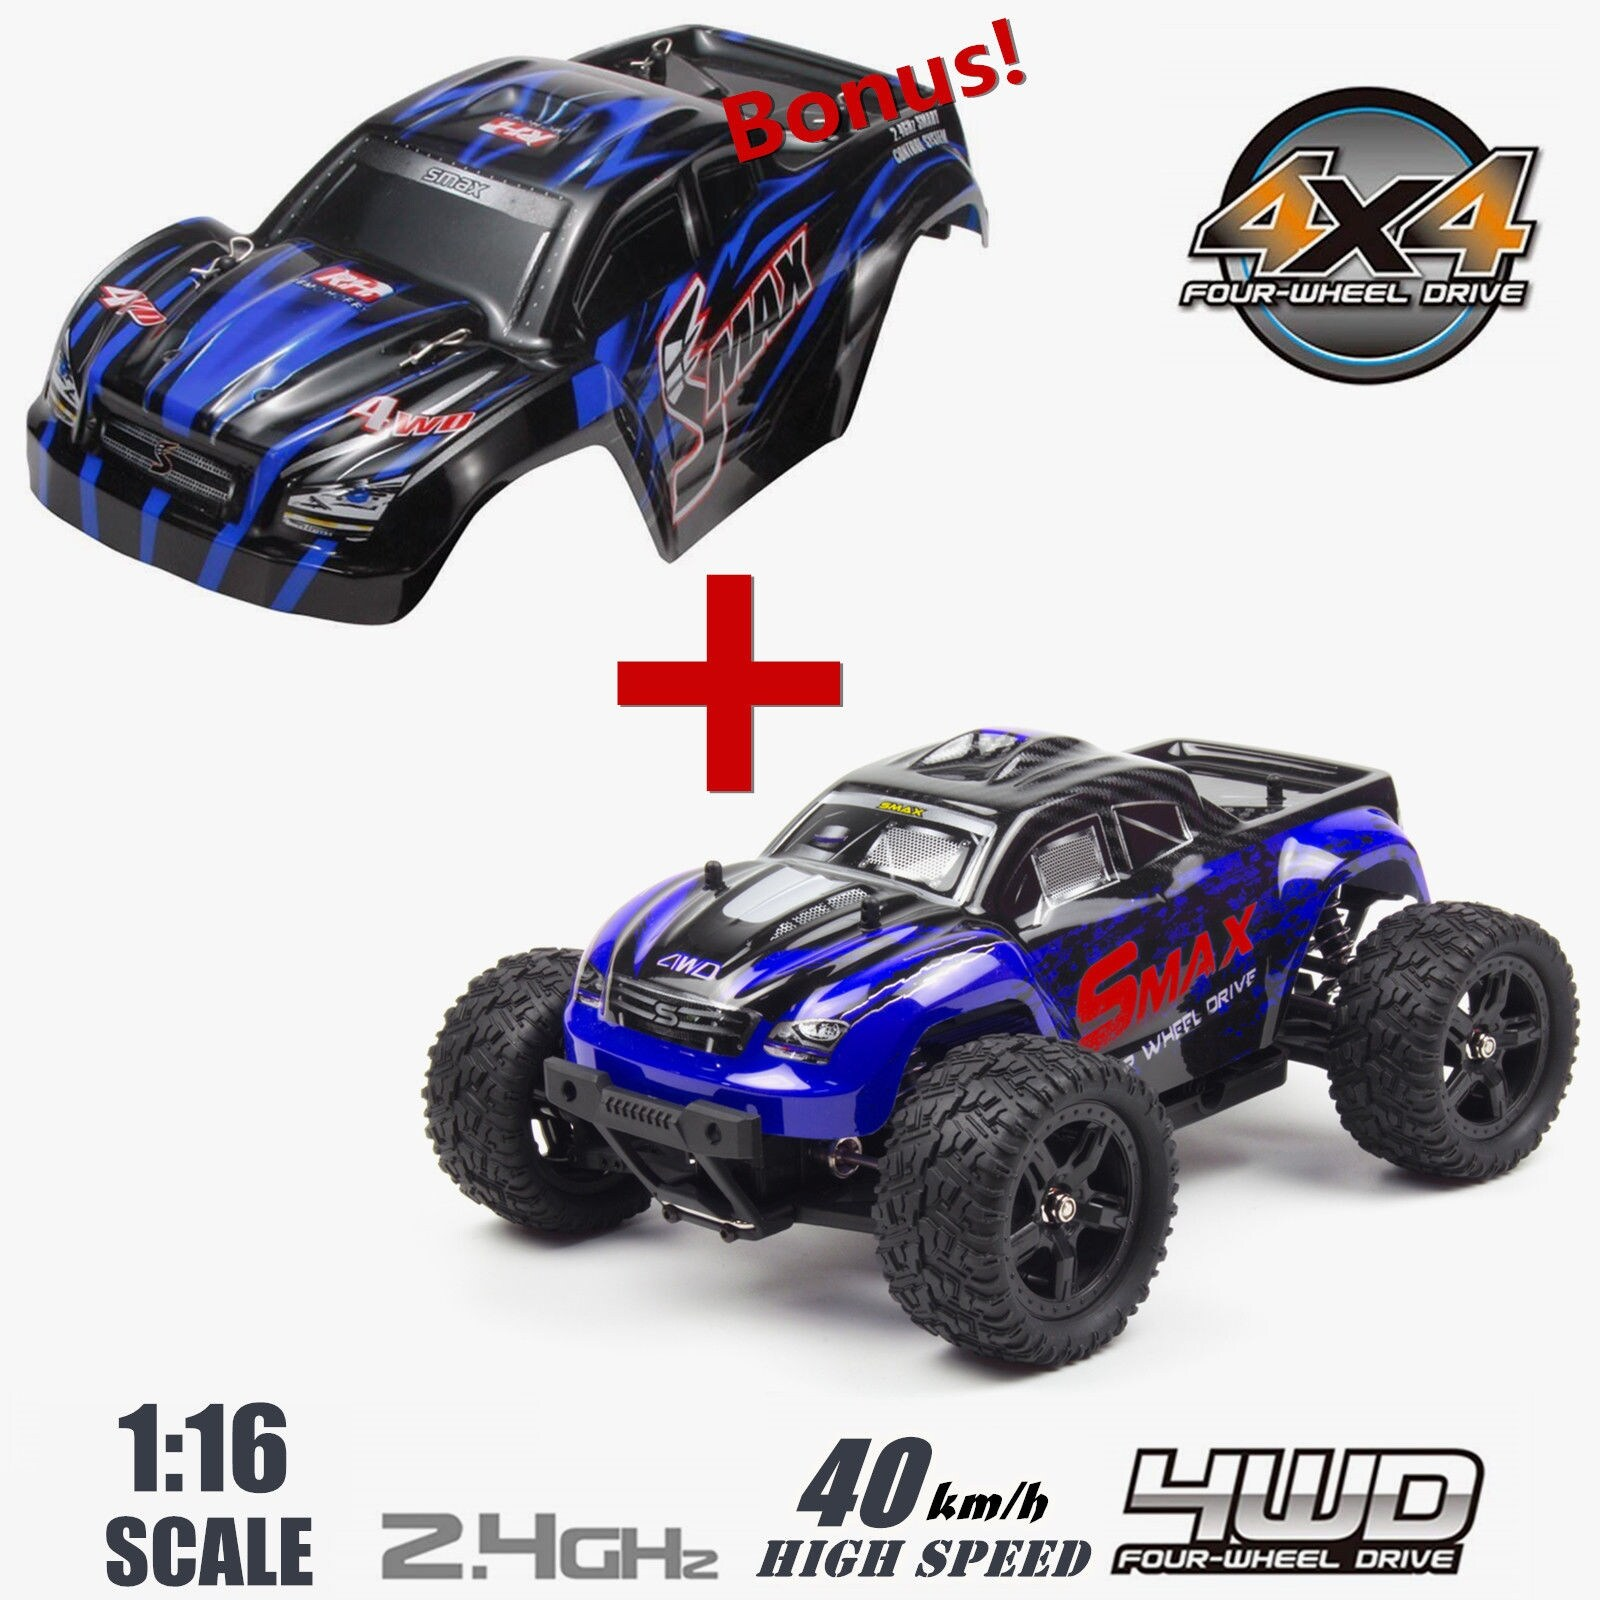 REMO 1/16 Scale RC Bigfoot Truck 4WD Remote Control Car Off-Road Vehicle  with Extral Car Shell Blue/Red Gift